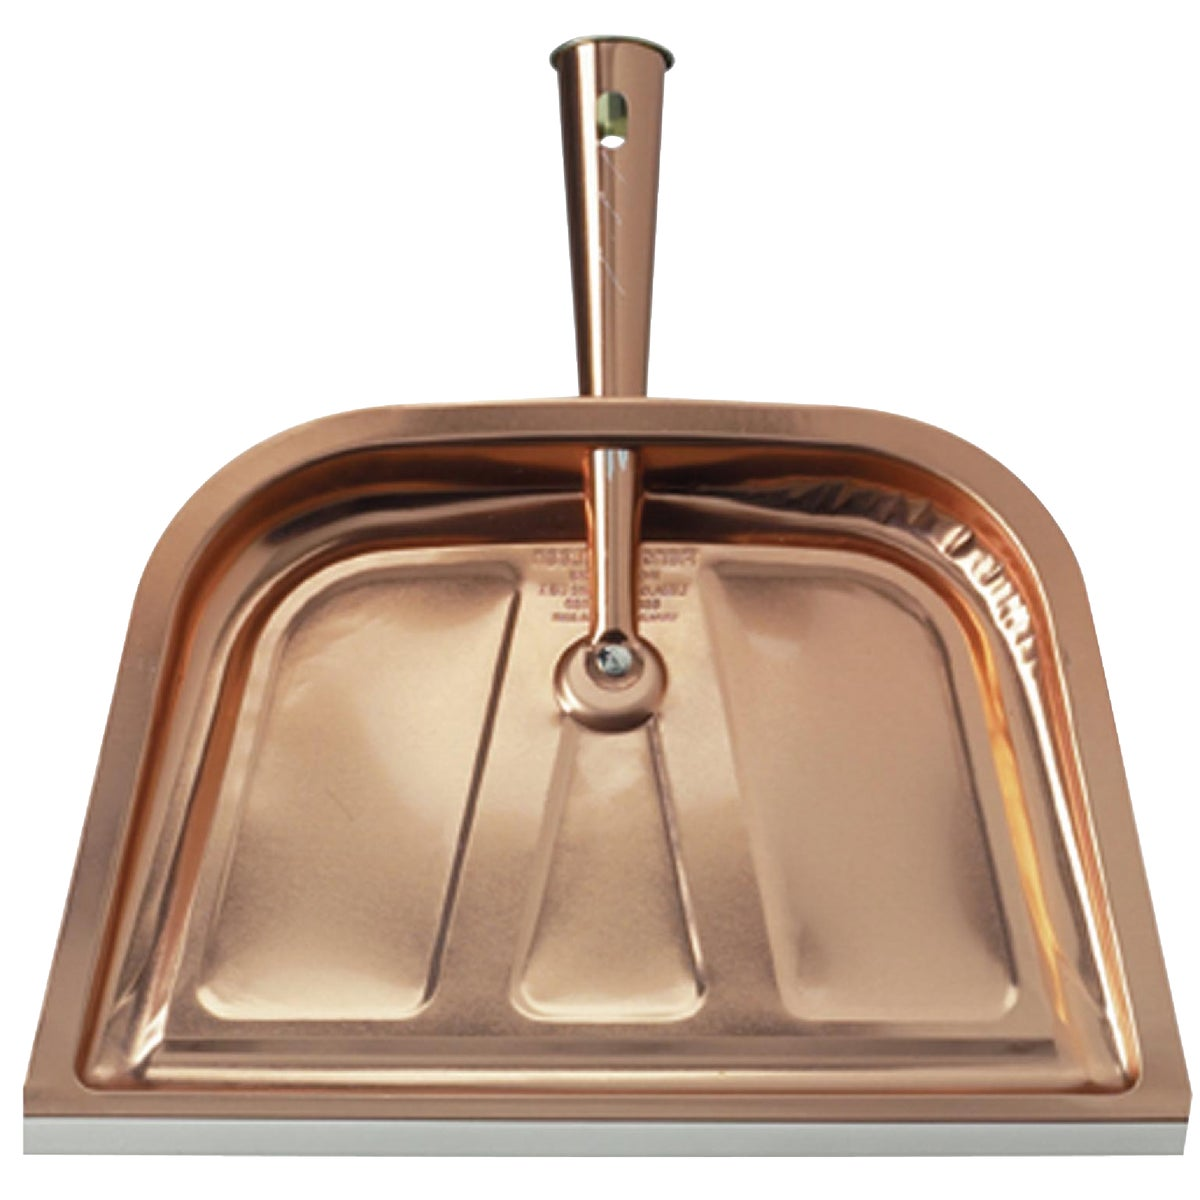 COPPER DUSTPAN - DP1UC by Range Kleen Mfg Inc